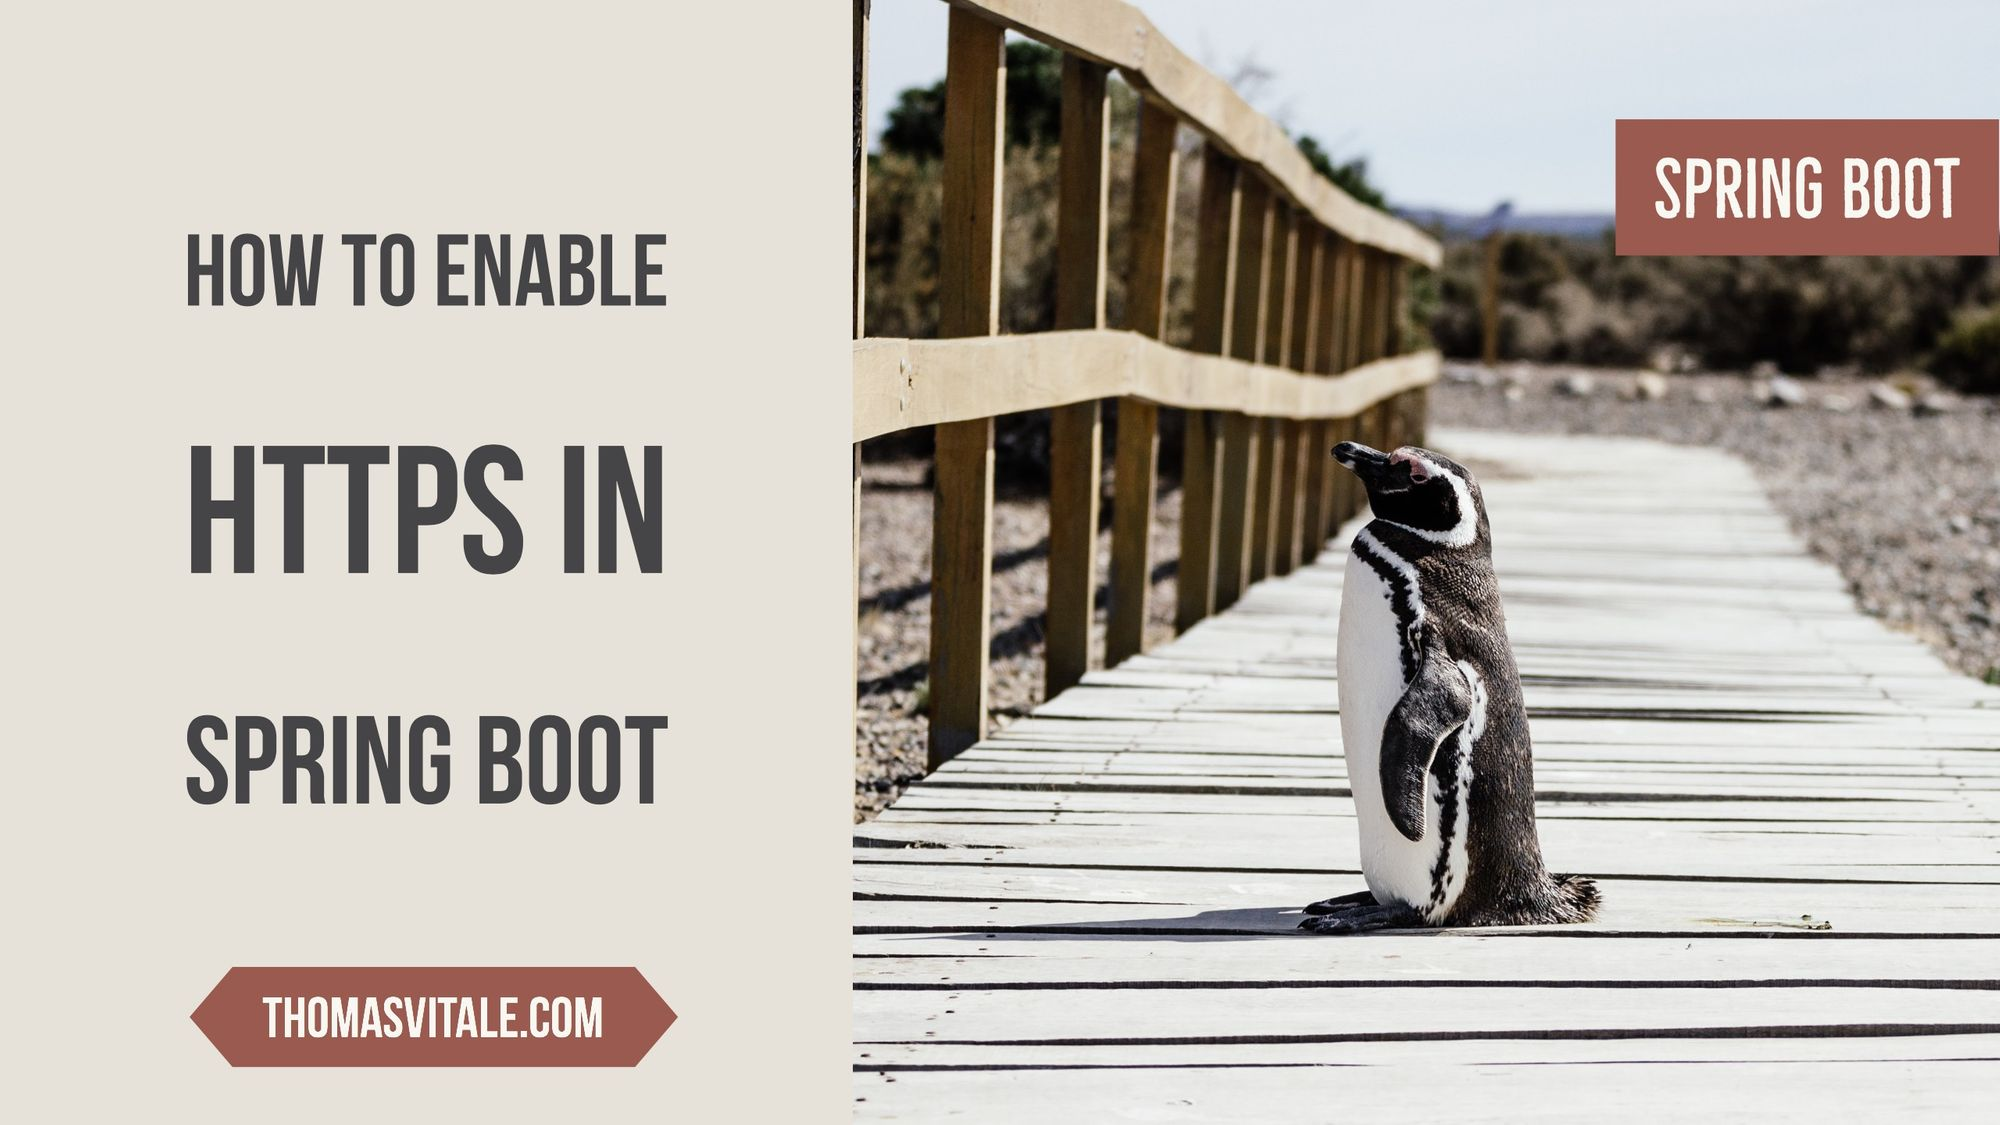 How to enable HTTPS in a Spring Boot Java application